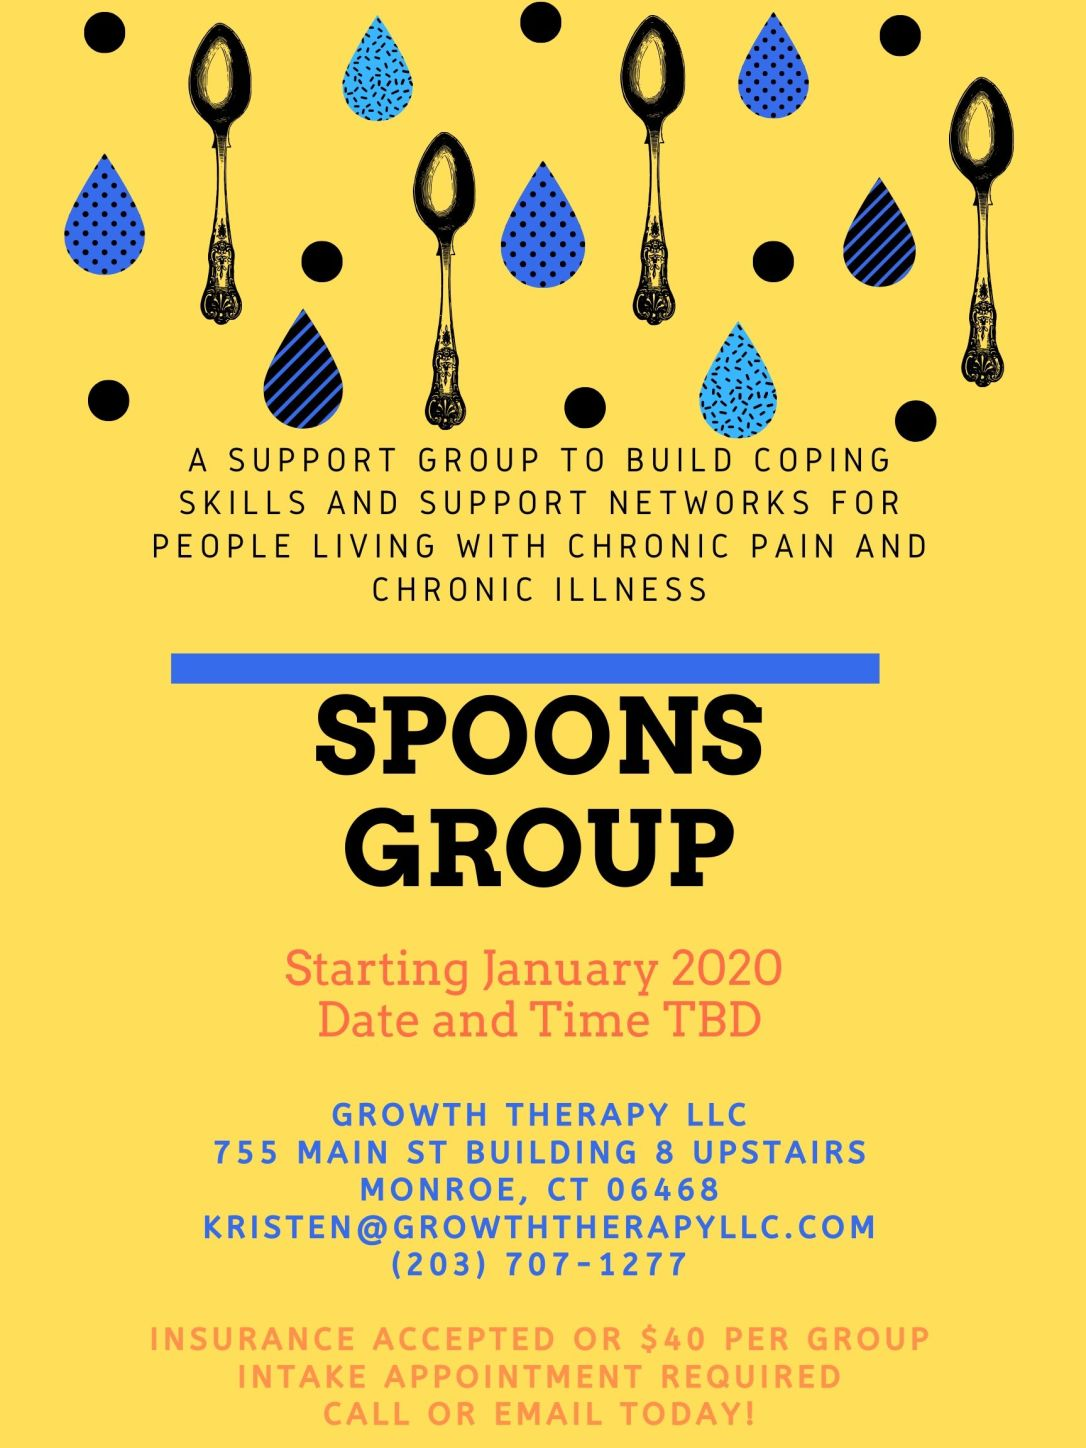 SPOONS GROUP